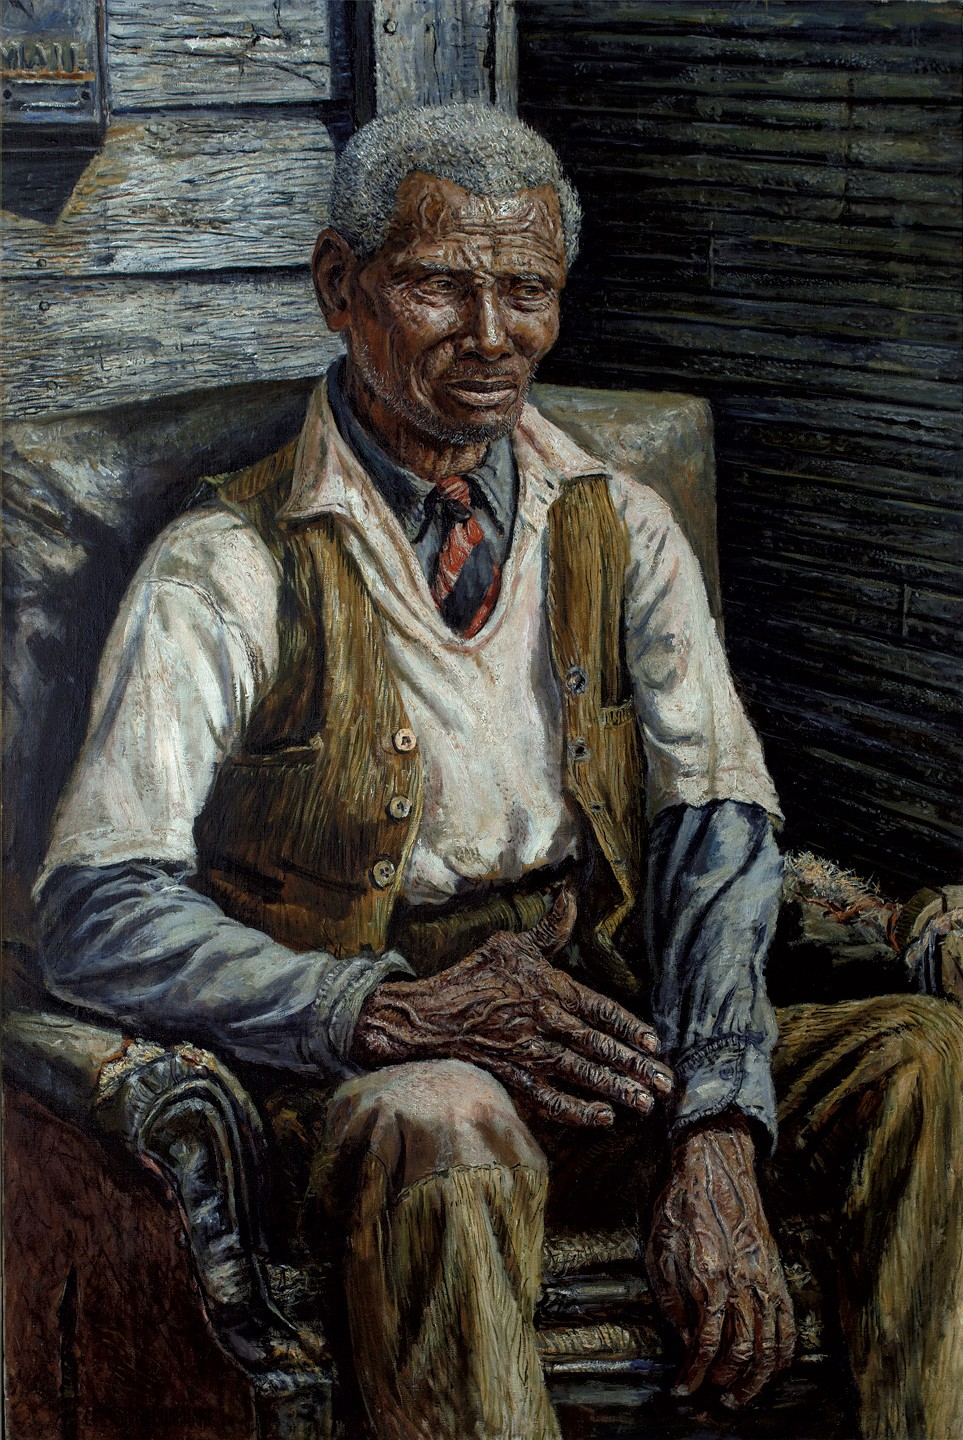 This work by Emerson Burkhart shows an old man seating